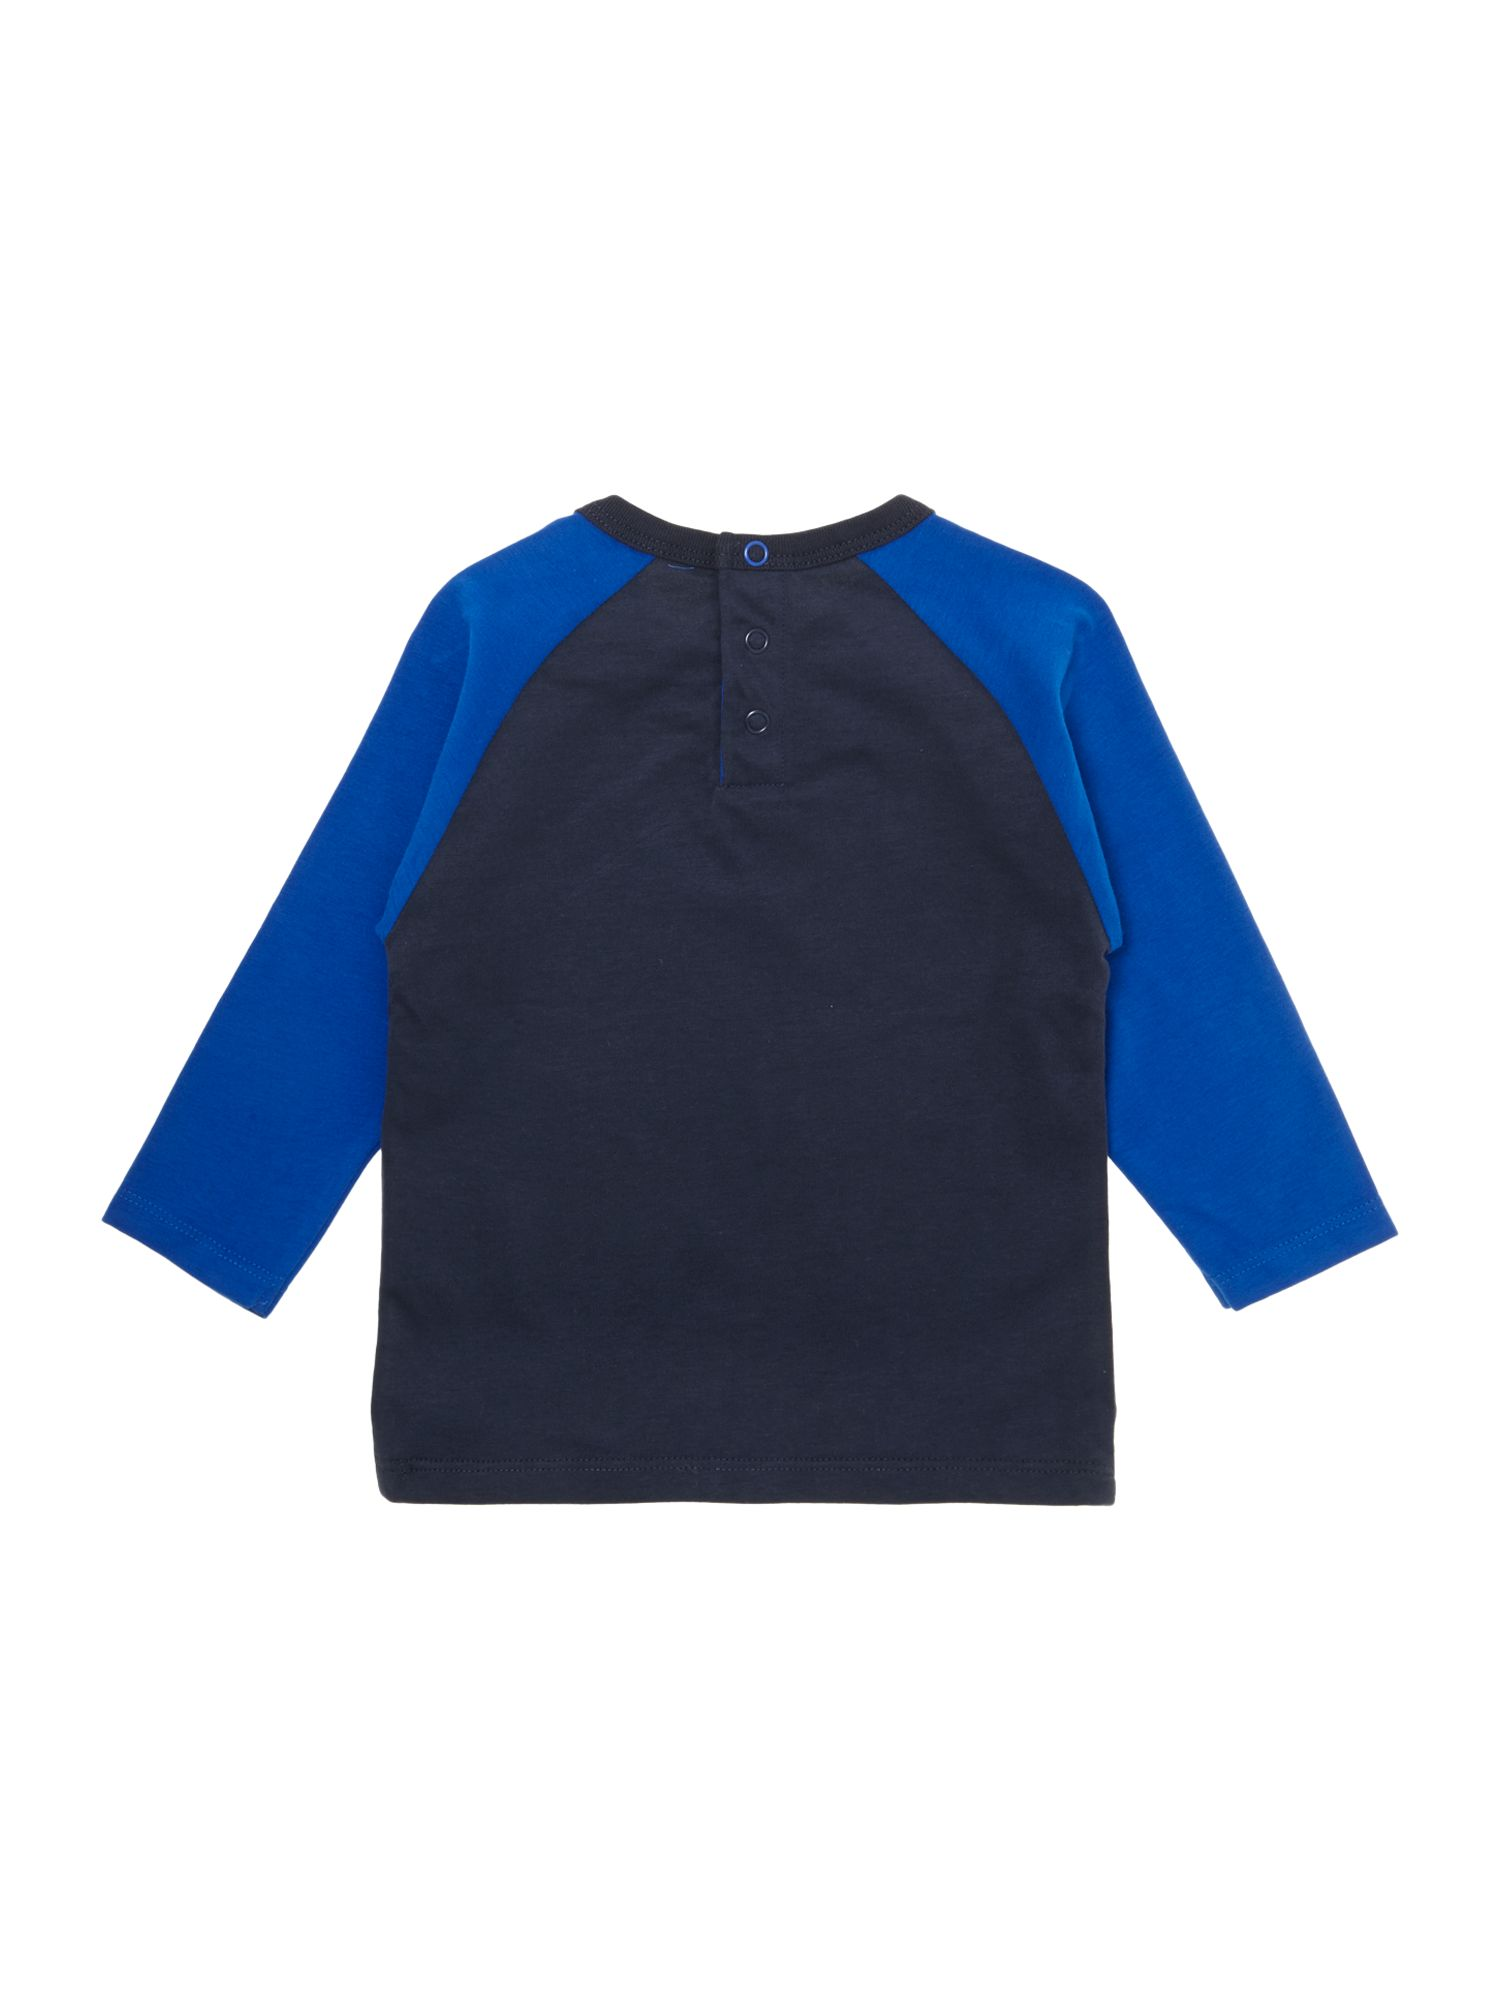 Boys jersey long sleeve t-shirt